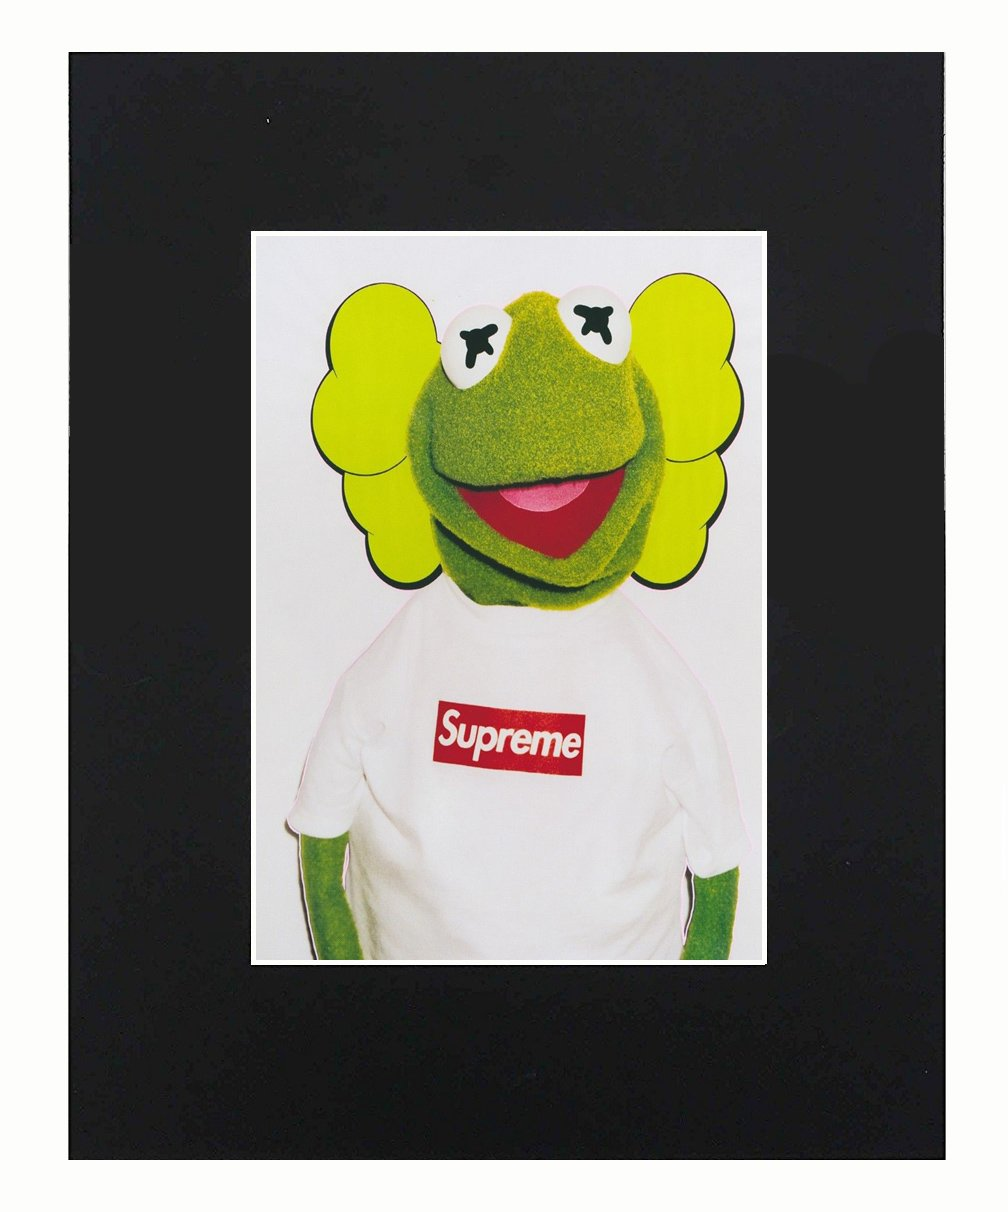 4c0eff4aea06 Supreme X Kermit the frog print poster matte urban street dope Cool 8x10  Black Matted Art Artworks Print Paintings Printed Picture Photograph Poster  Gift ...